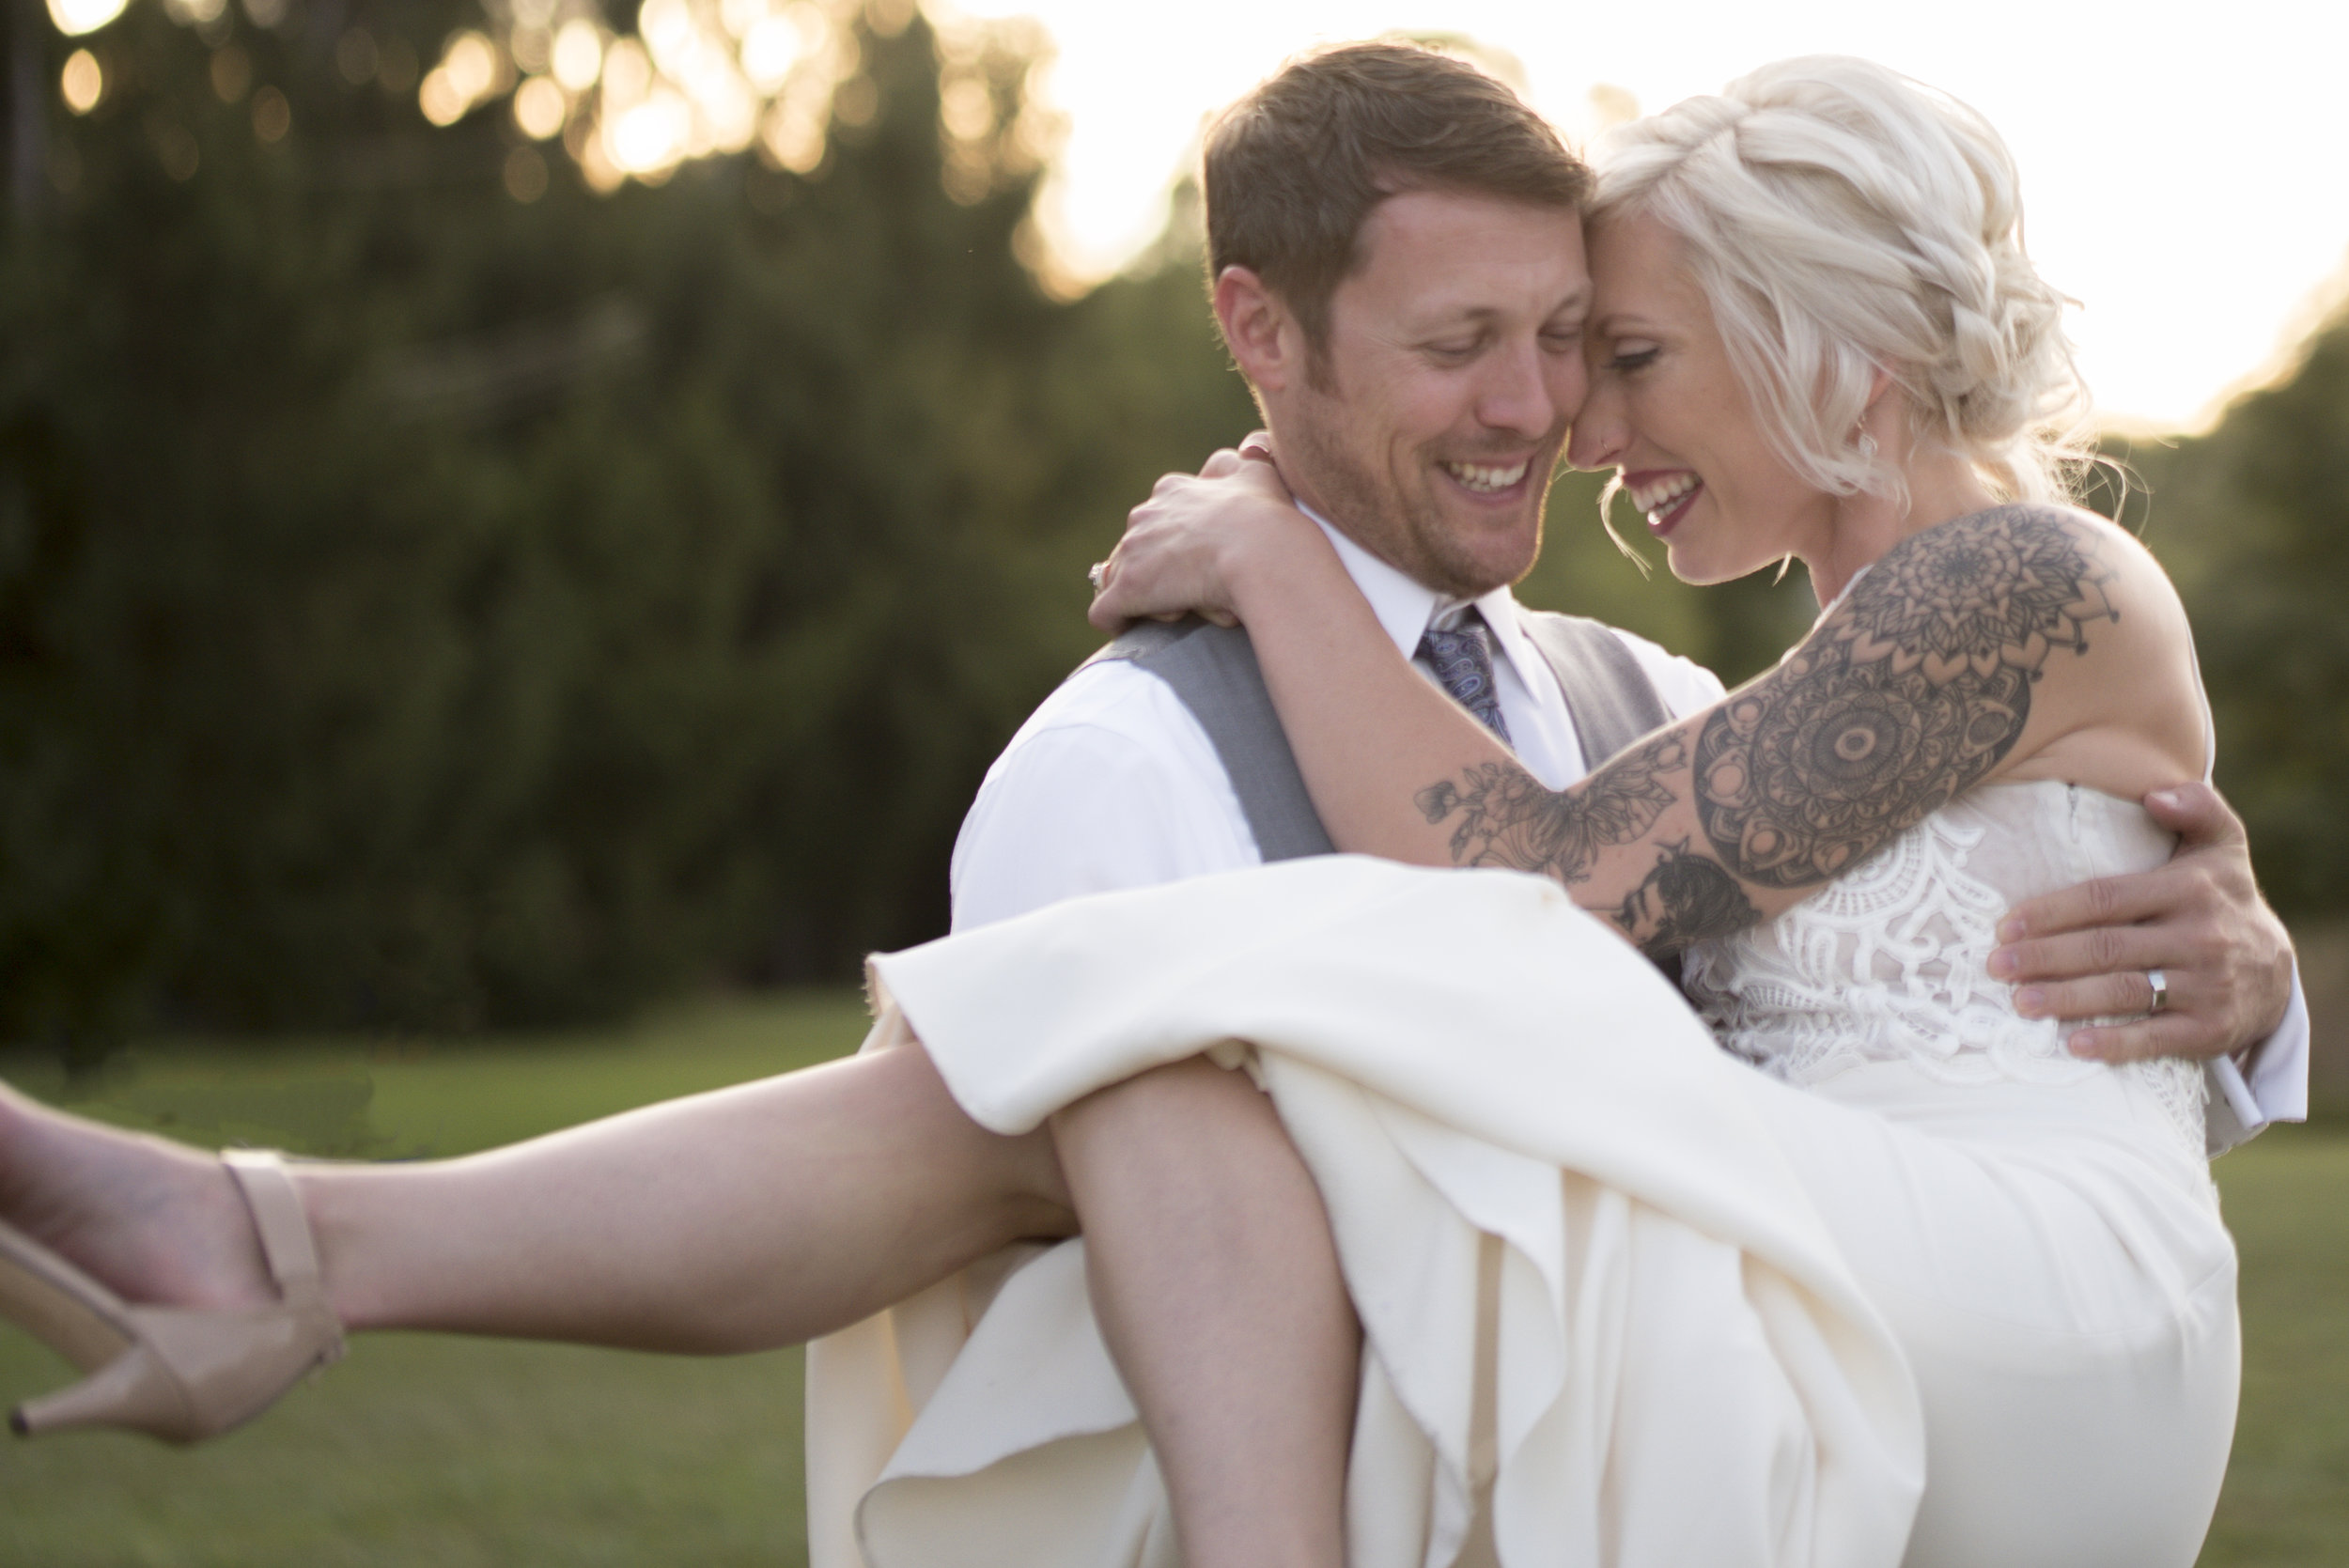 Groom carries bride during portrait on wedding day